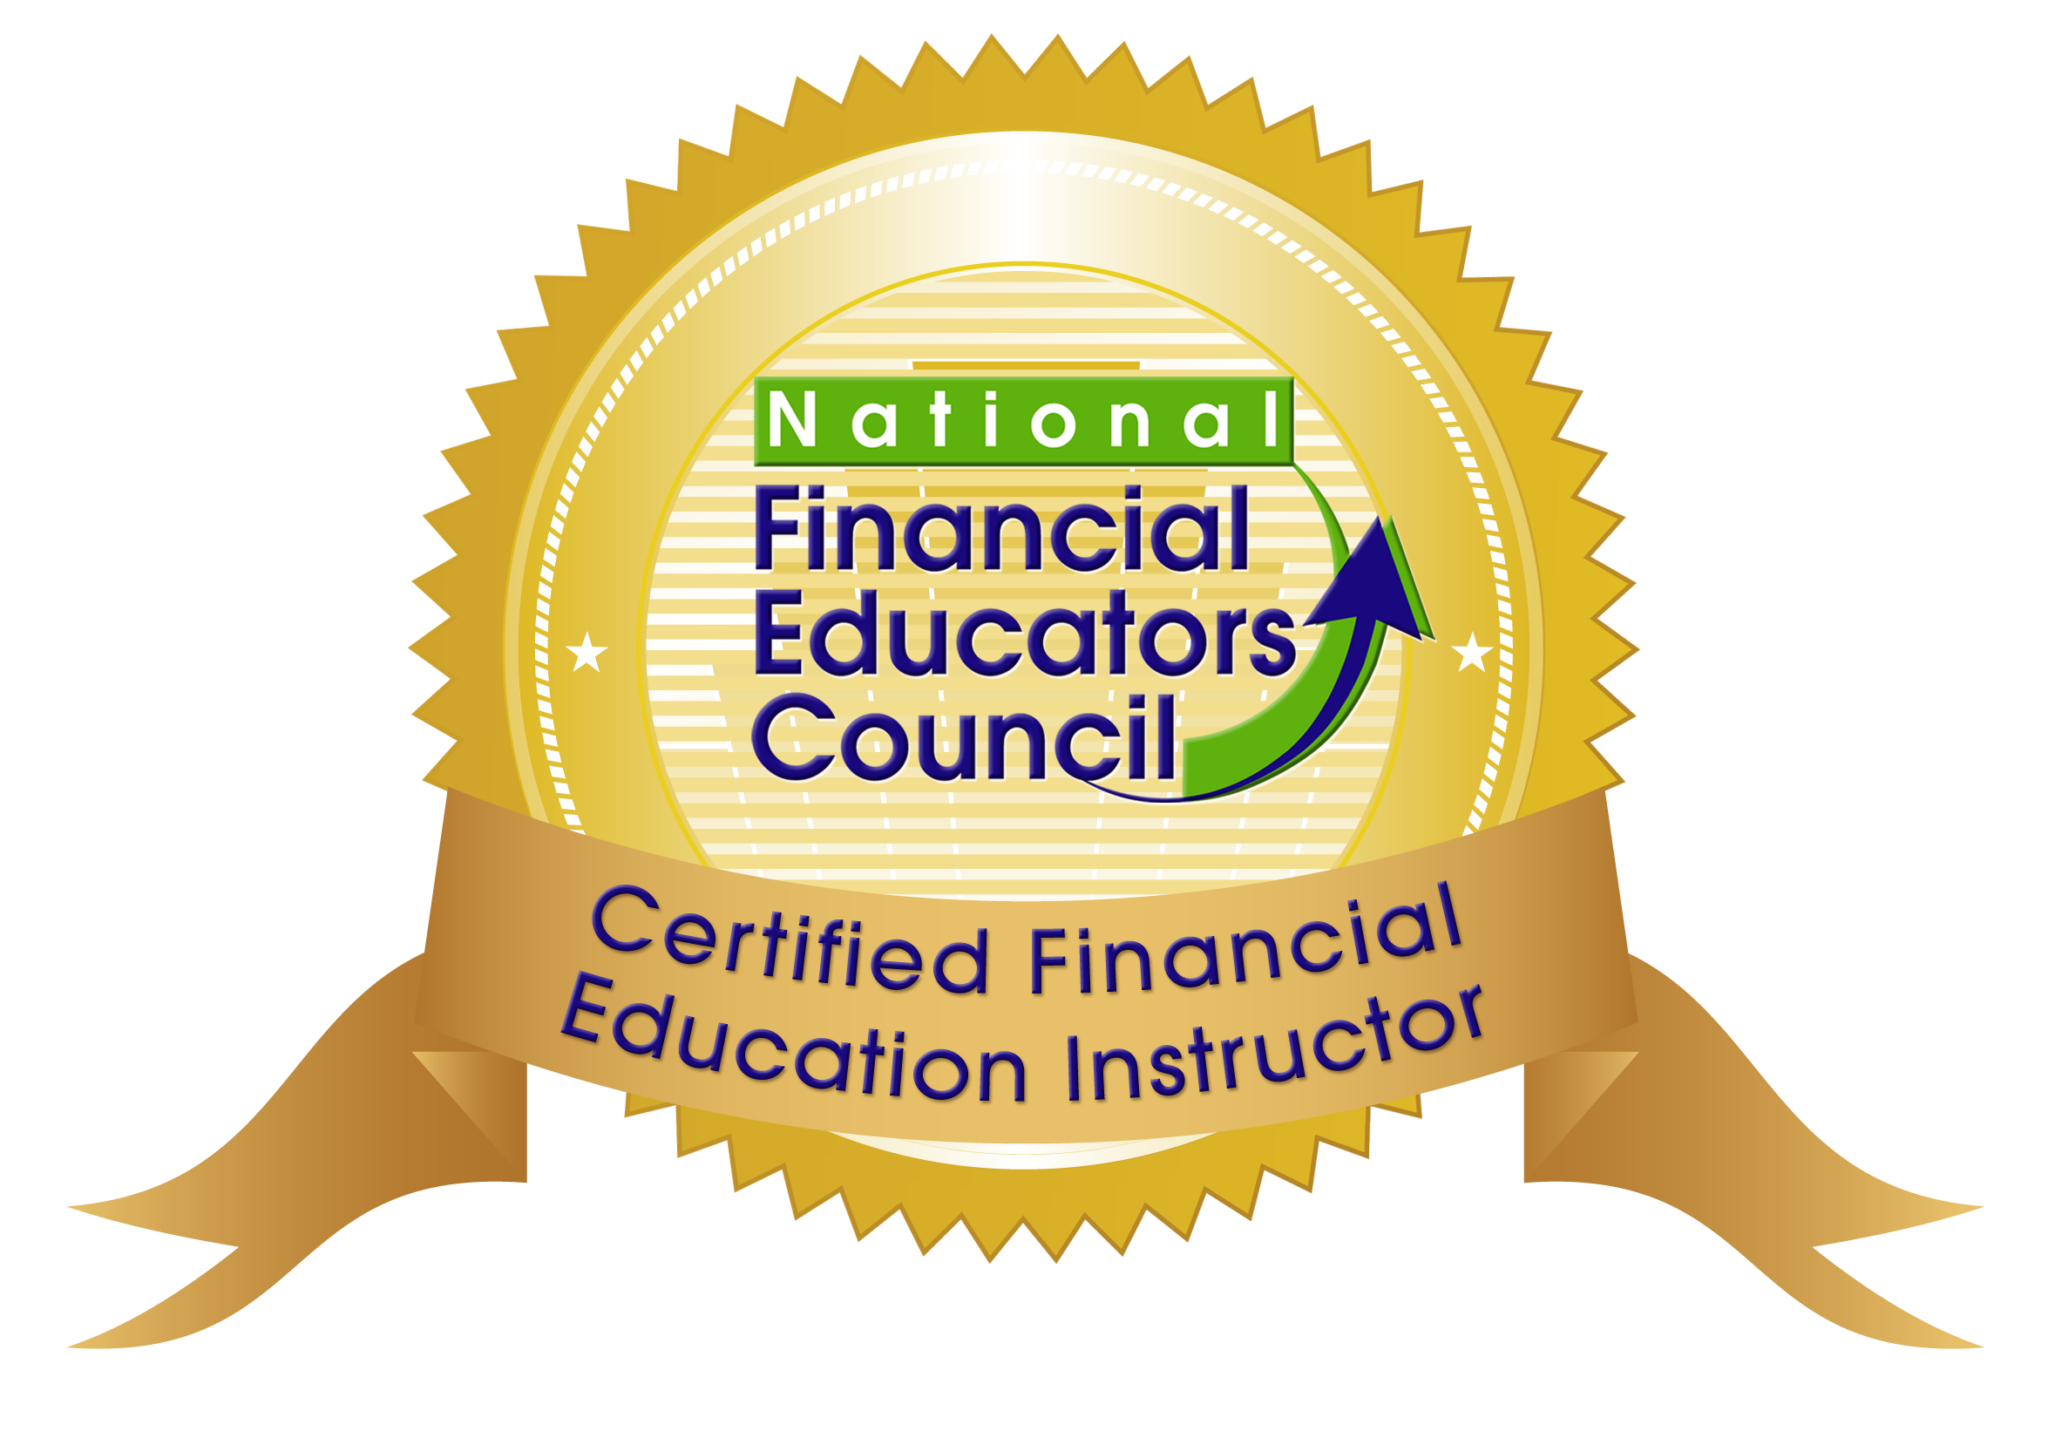 Certified-Financial-Education-Instructor-Seal